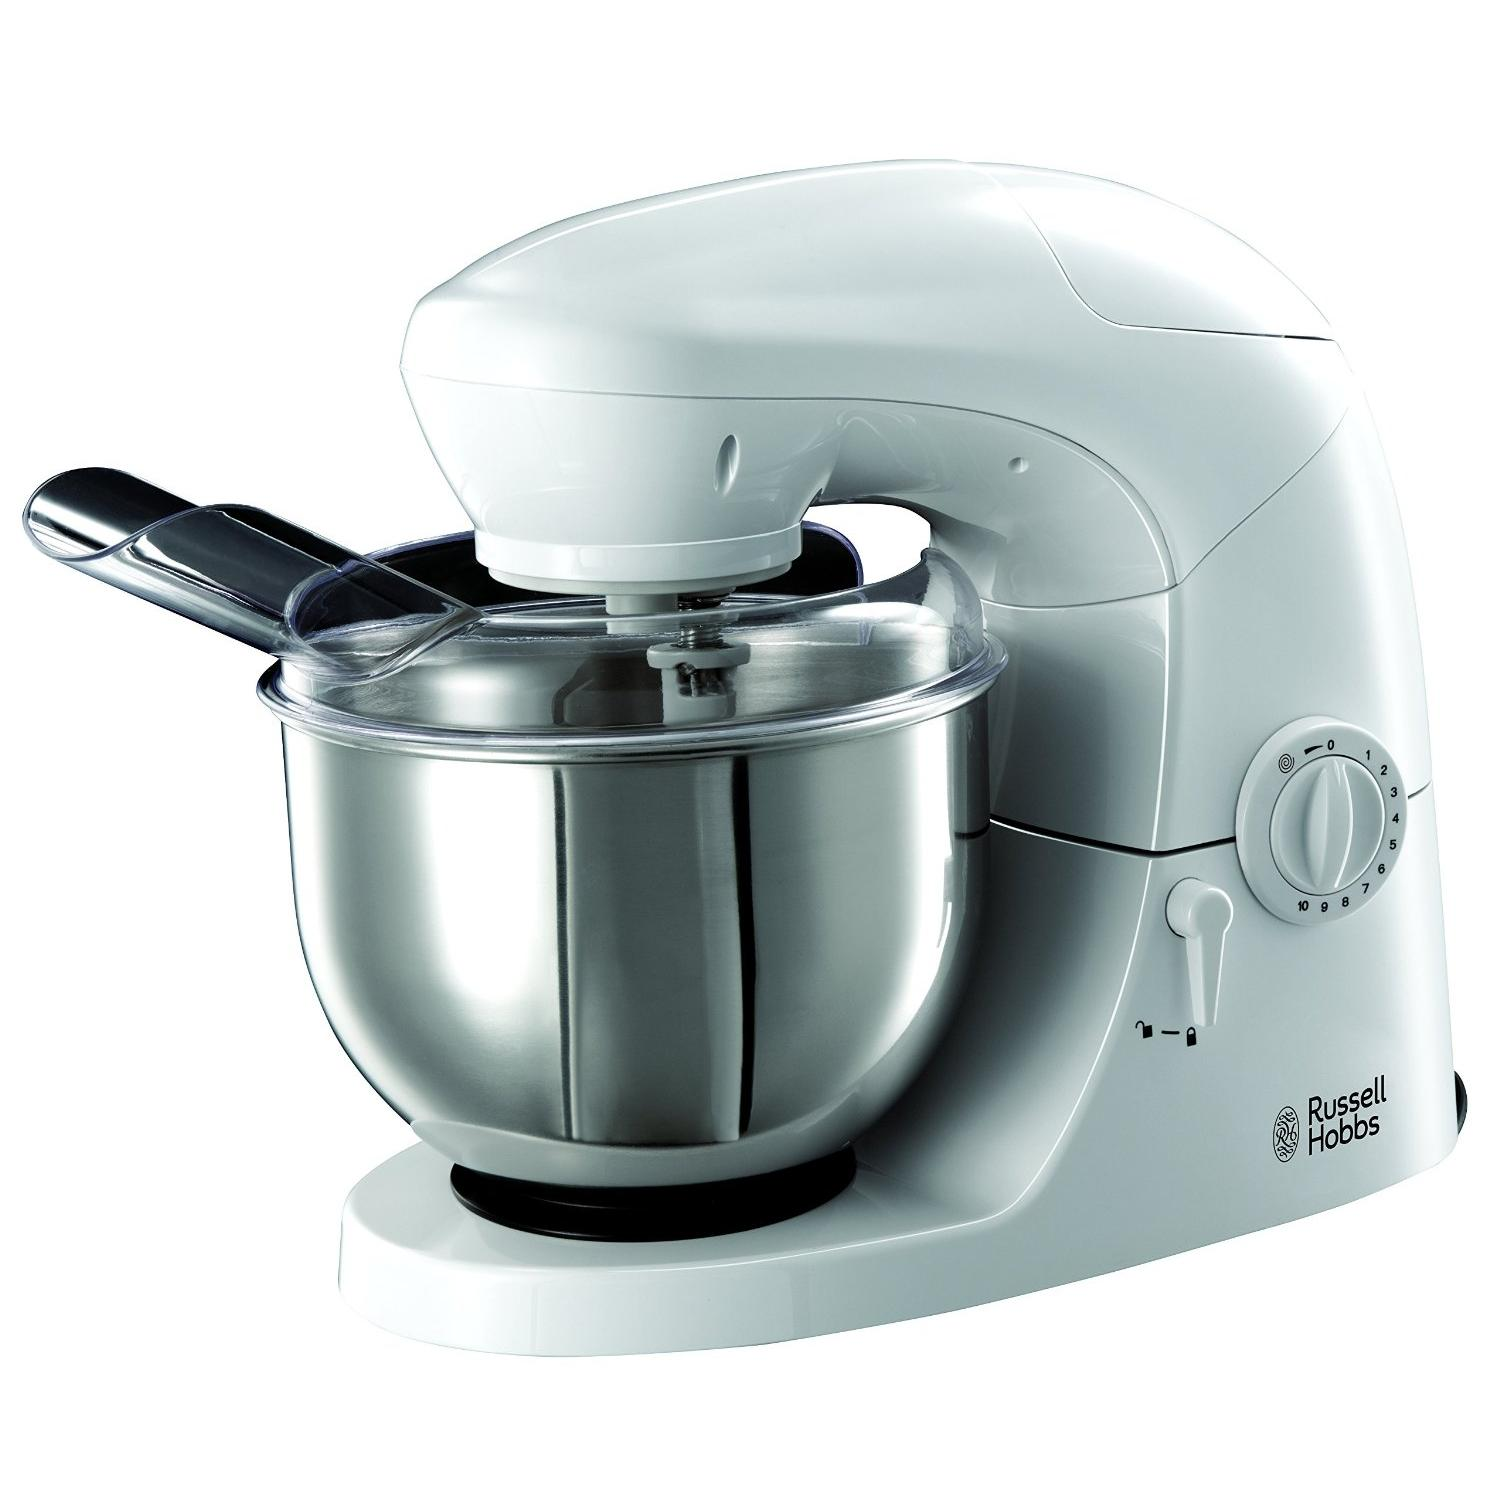 Russell hobbs - 21060 - Robot culinaire 4,8L 400 W